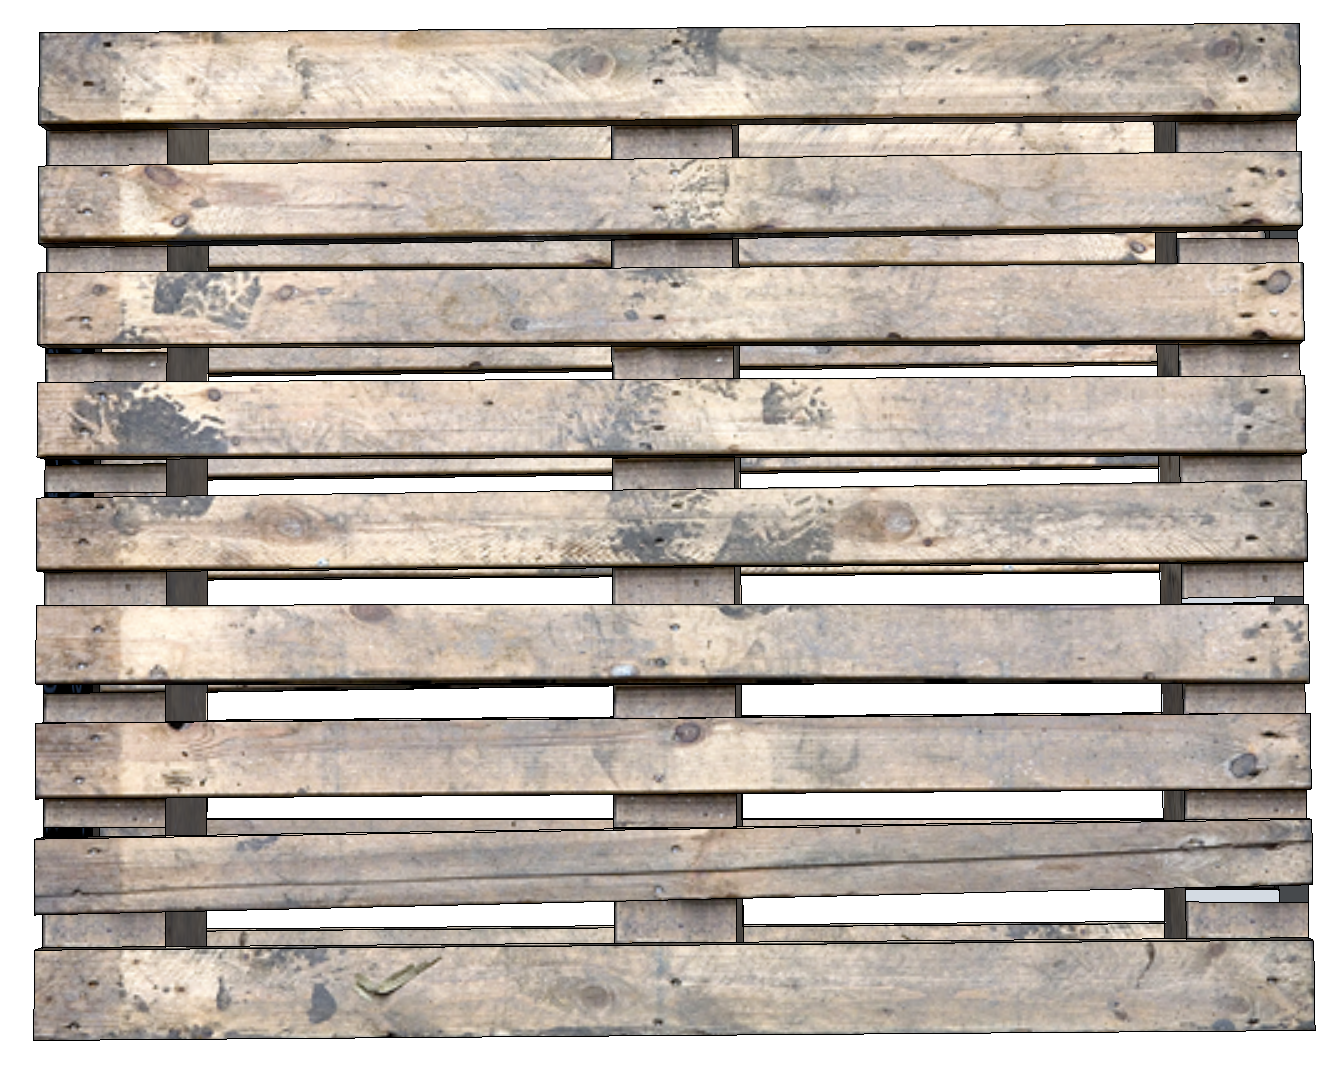 Wooden Pallet 3d Model Sample 30080 171461